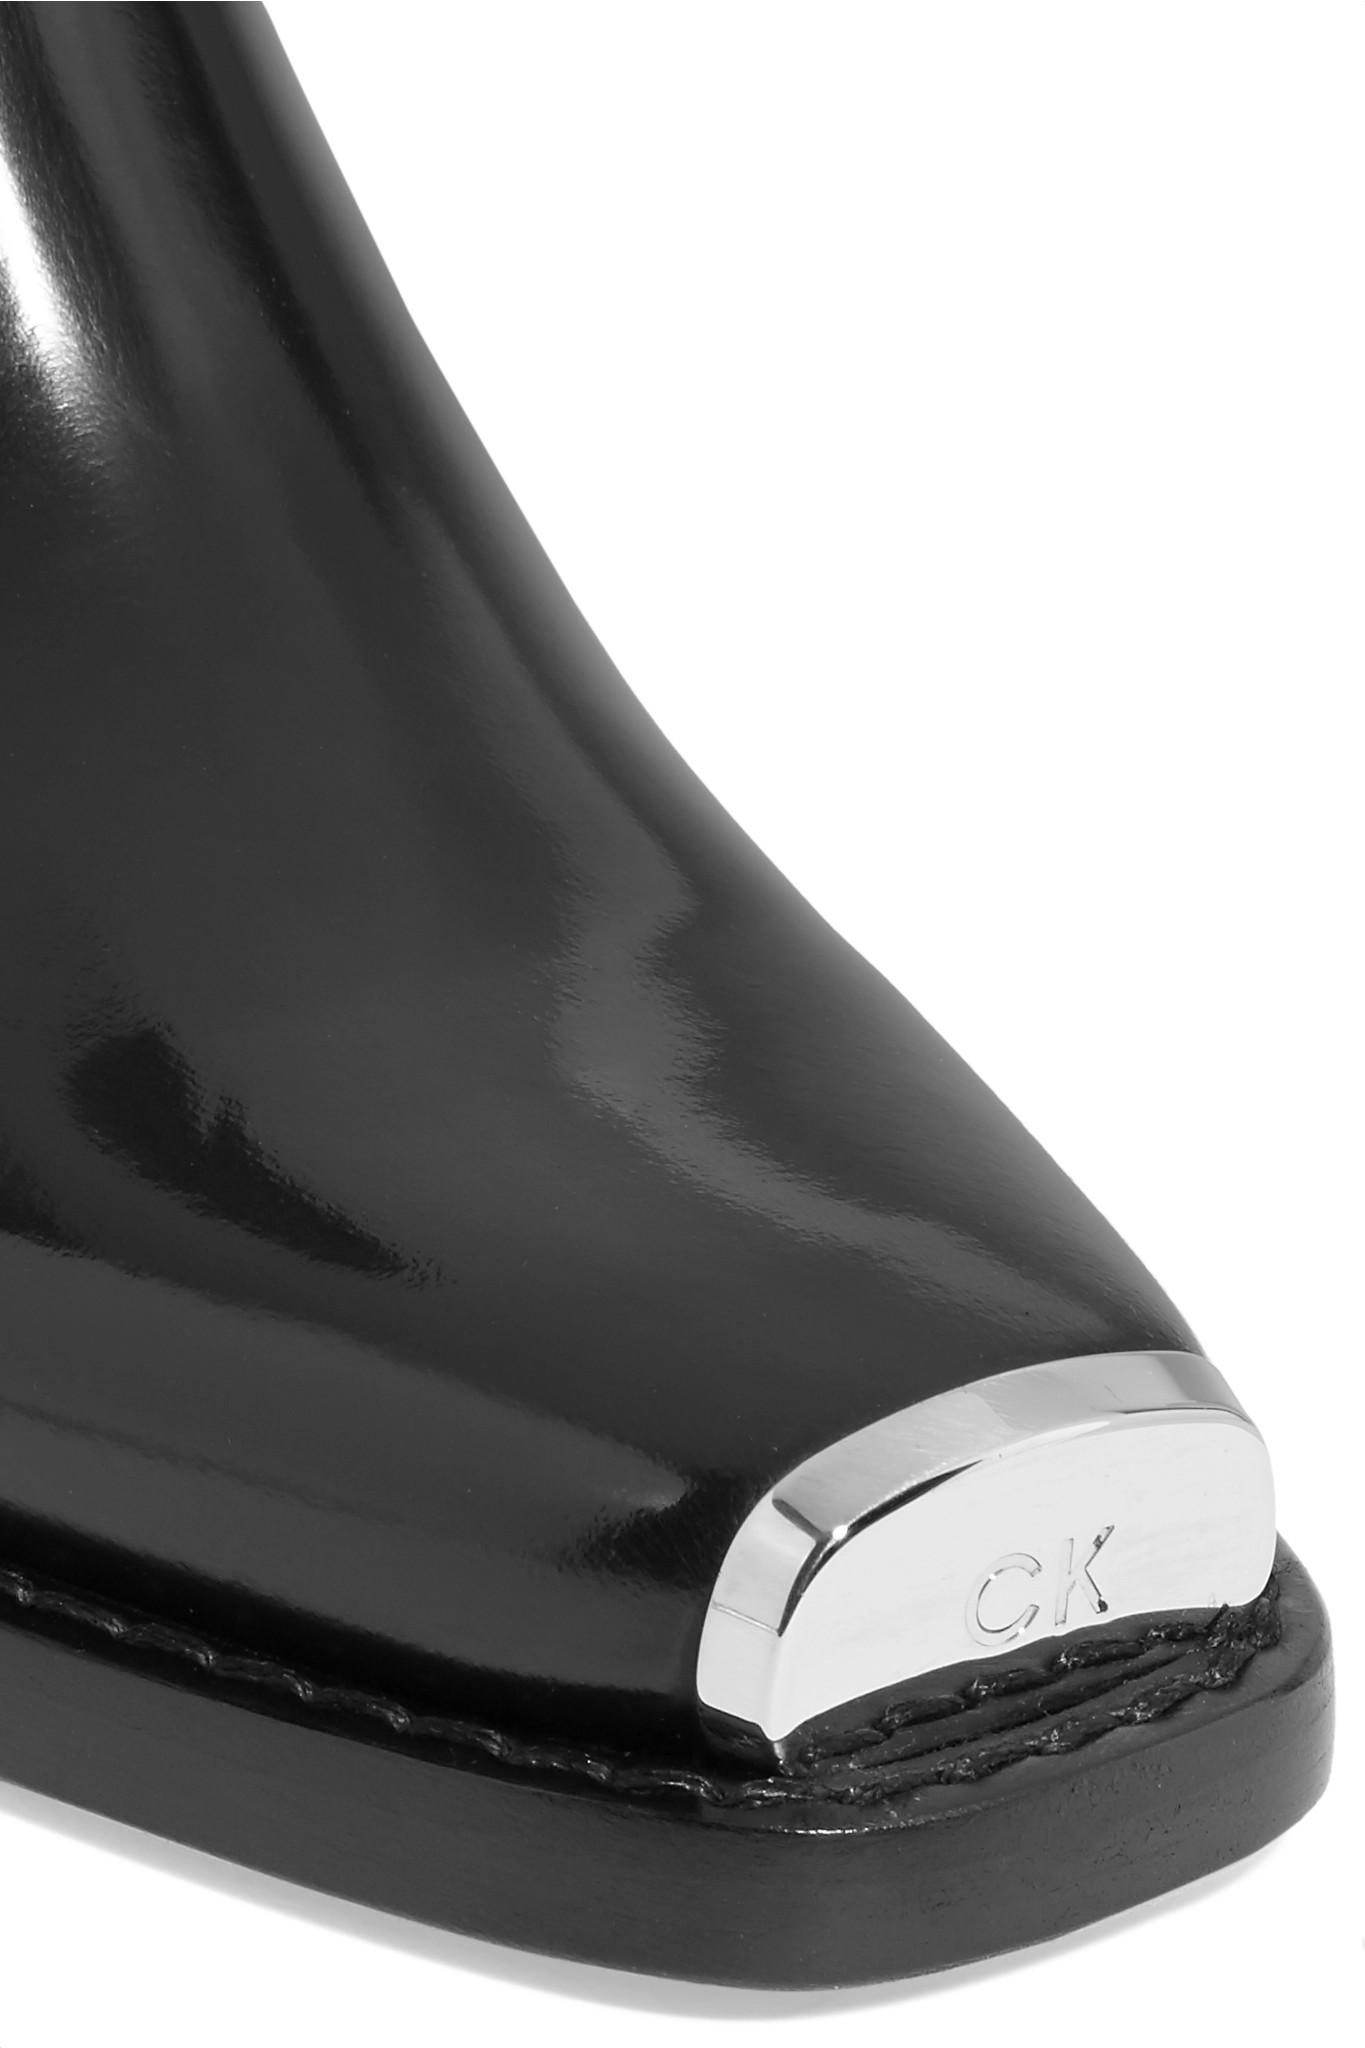 22b5b36d005 CALVIN KLEIN 205W39NYC - Black Claire 40 Western Ankle Boots - Lyst. View  fullscreen